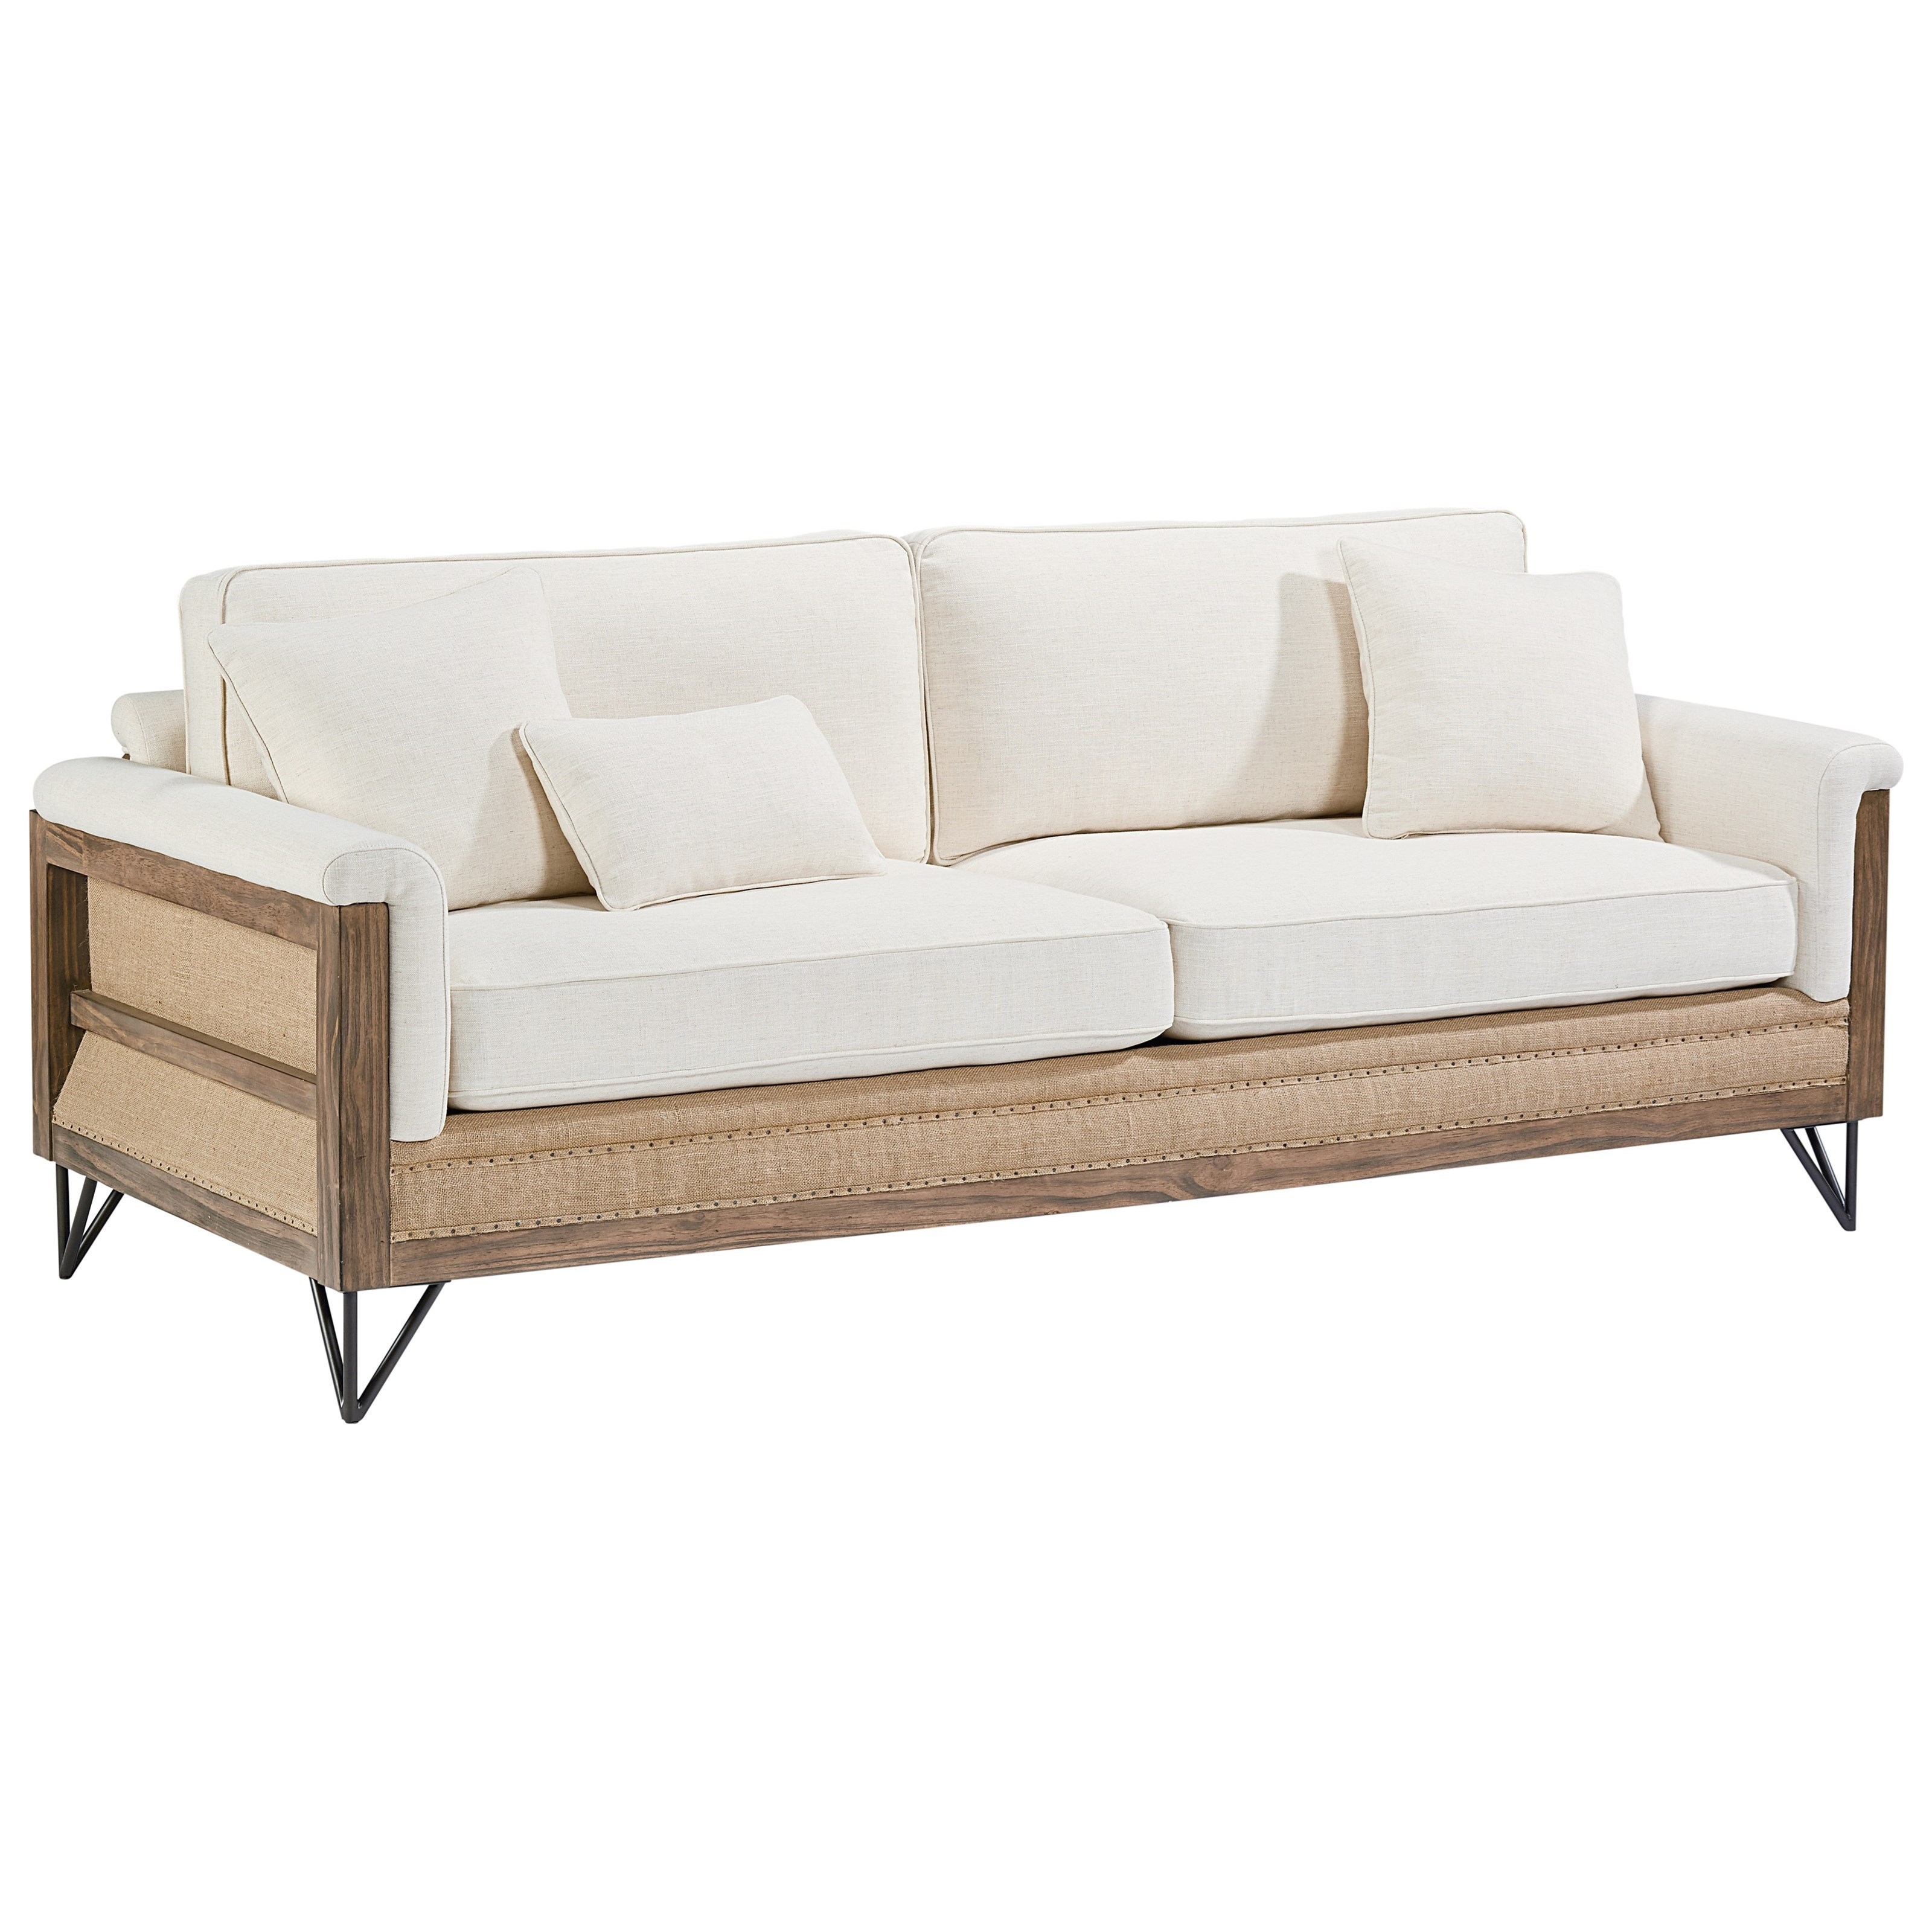 Paradigm sofa with exposed wood frame by magnolia home